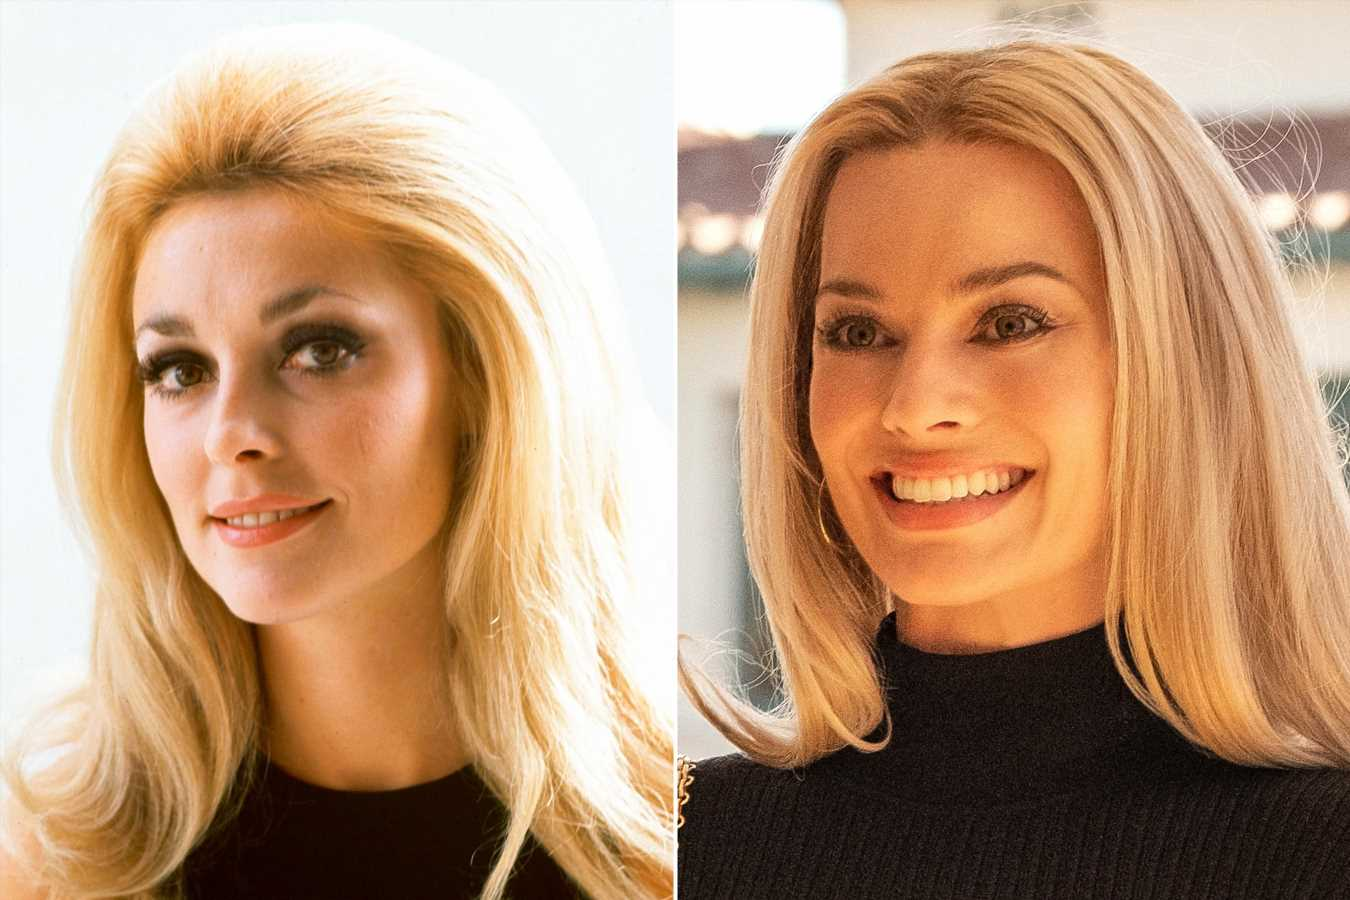 Quentin Tarantino on including Sharon Tate in Once Upon a Time in Hollywood